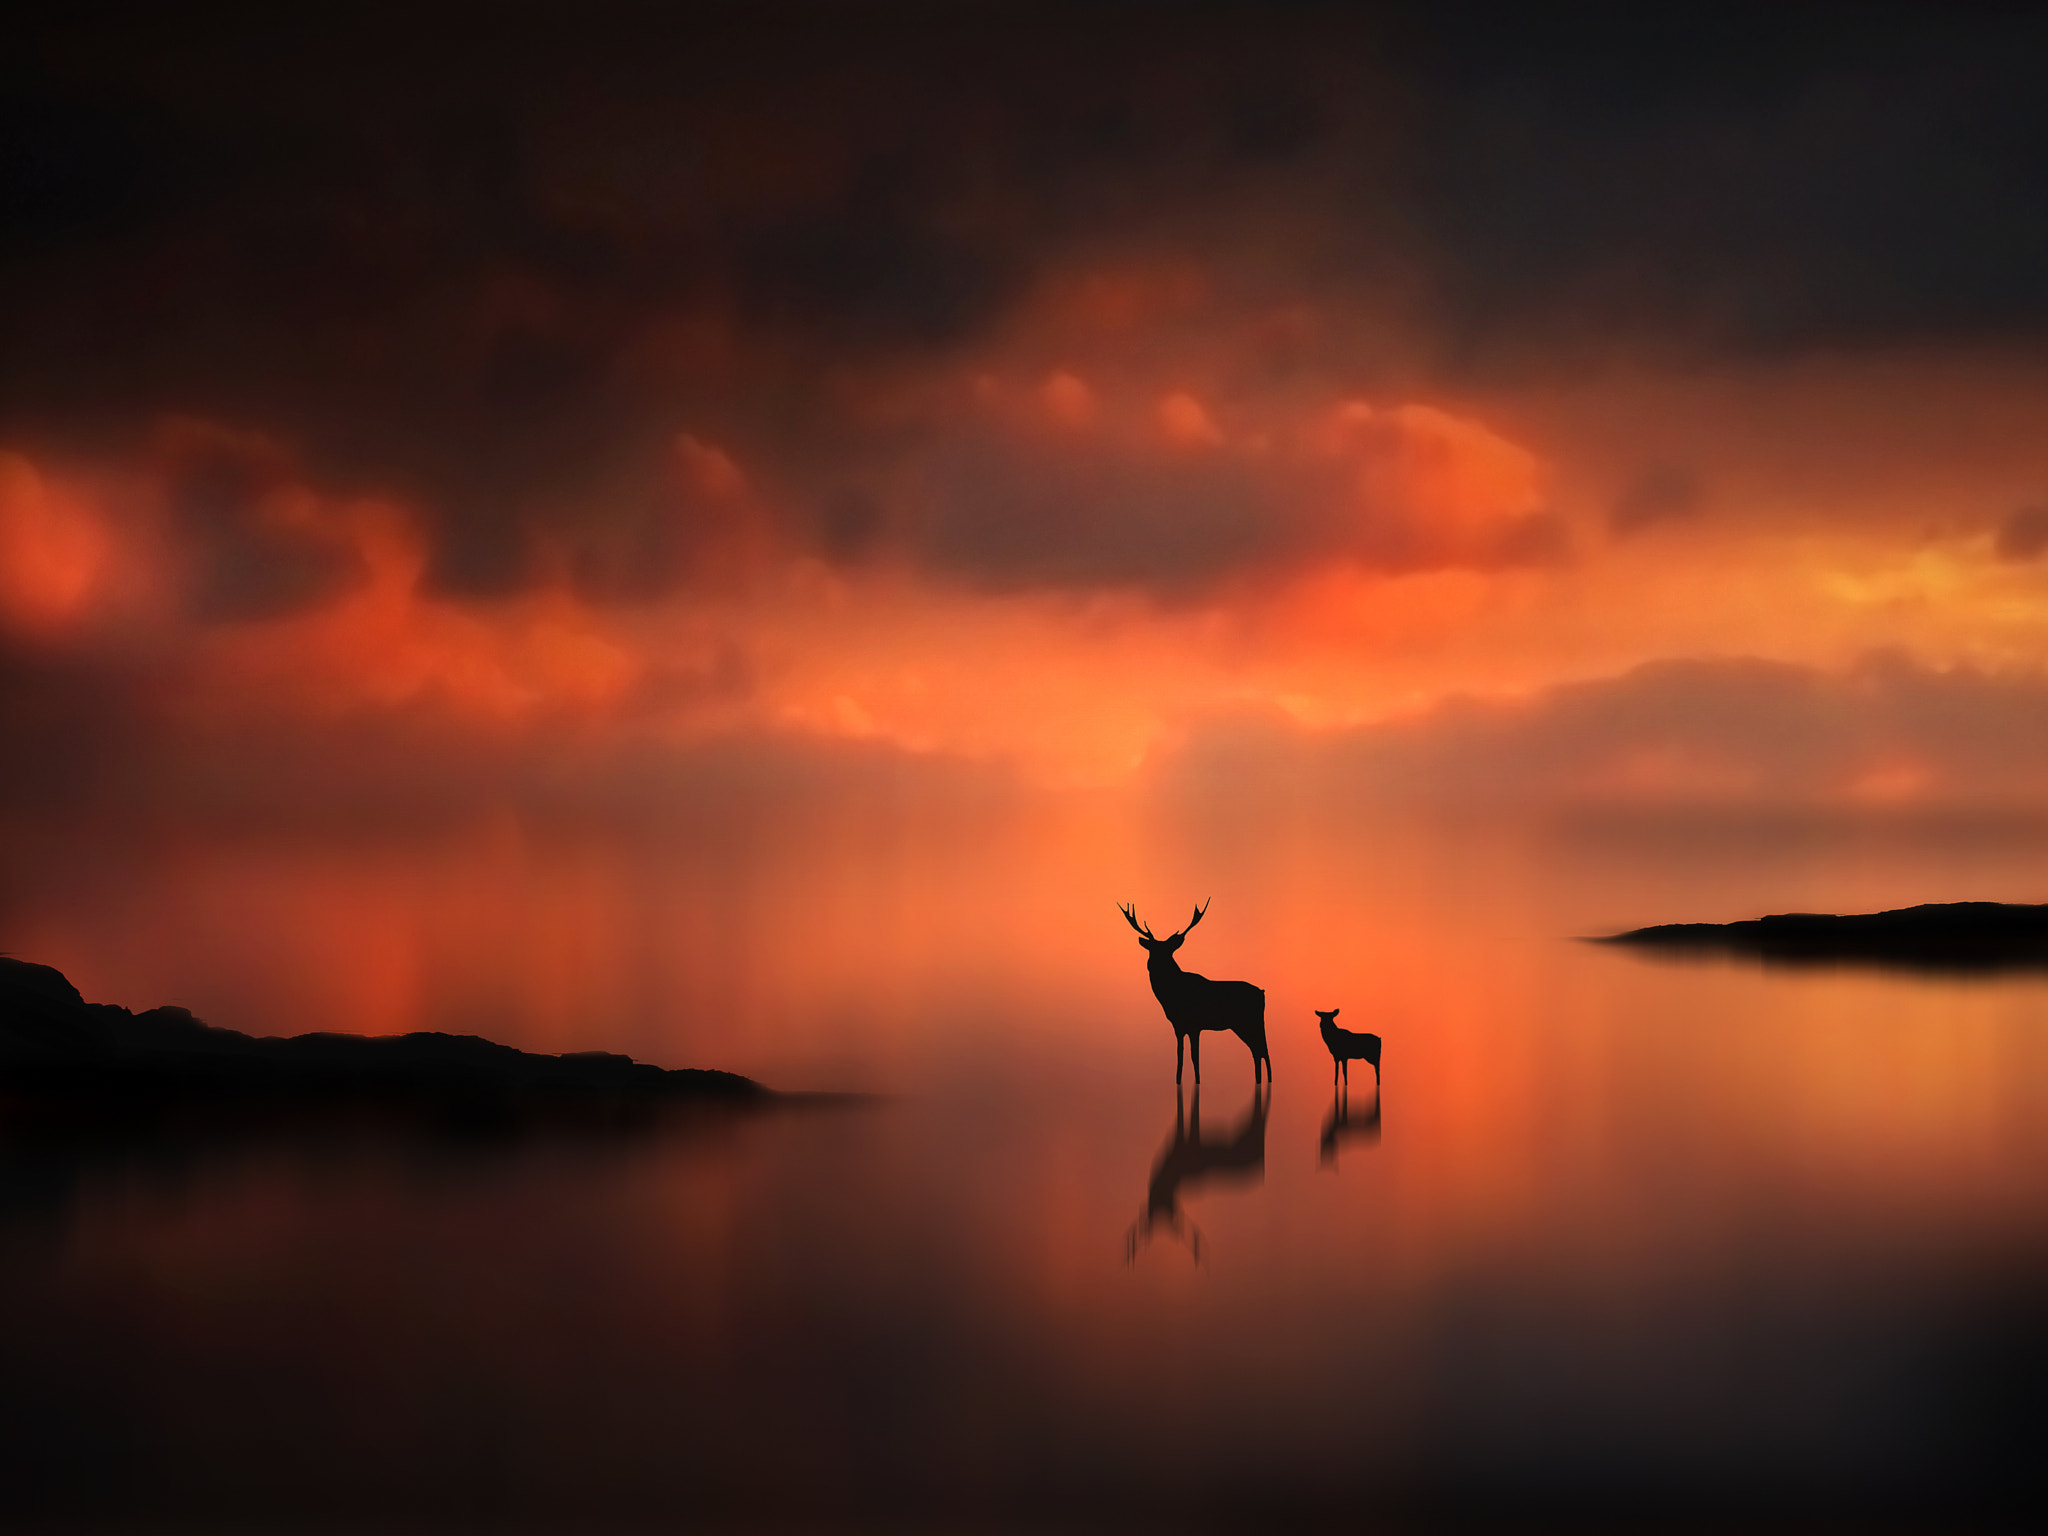 Kangaroo Wallpaper Hd The Deer At Sunset By Jenny Woodward Photo 7190214 500px